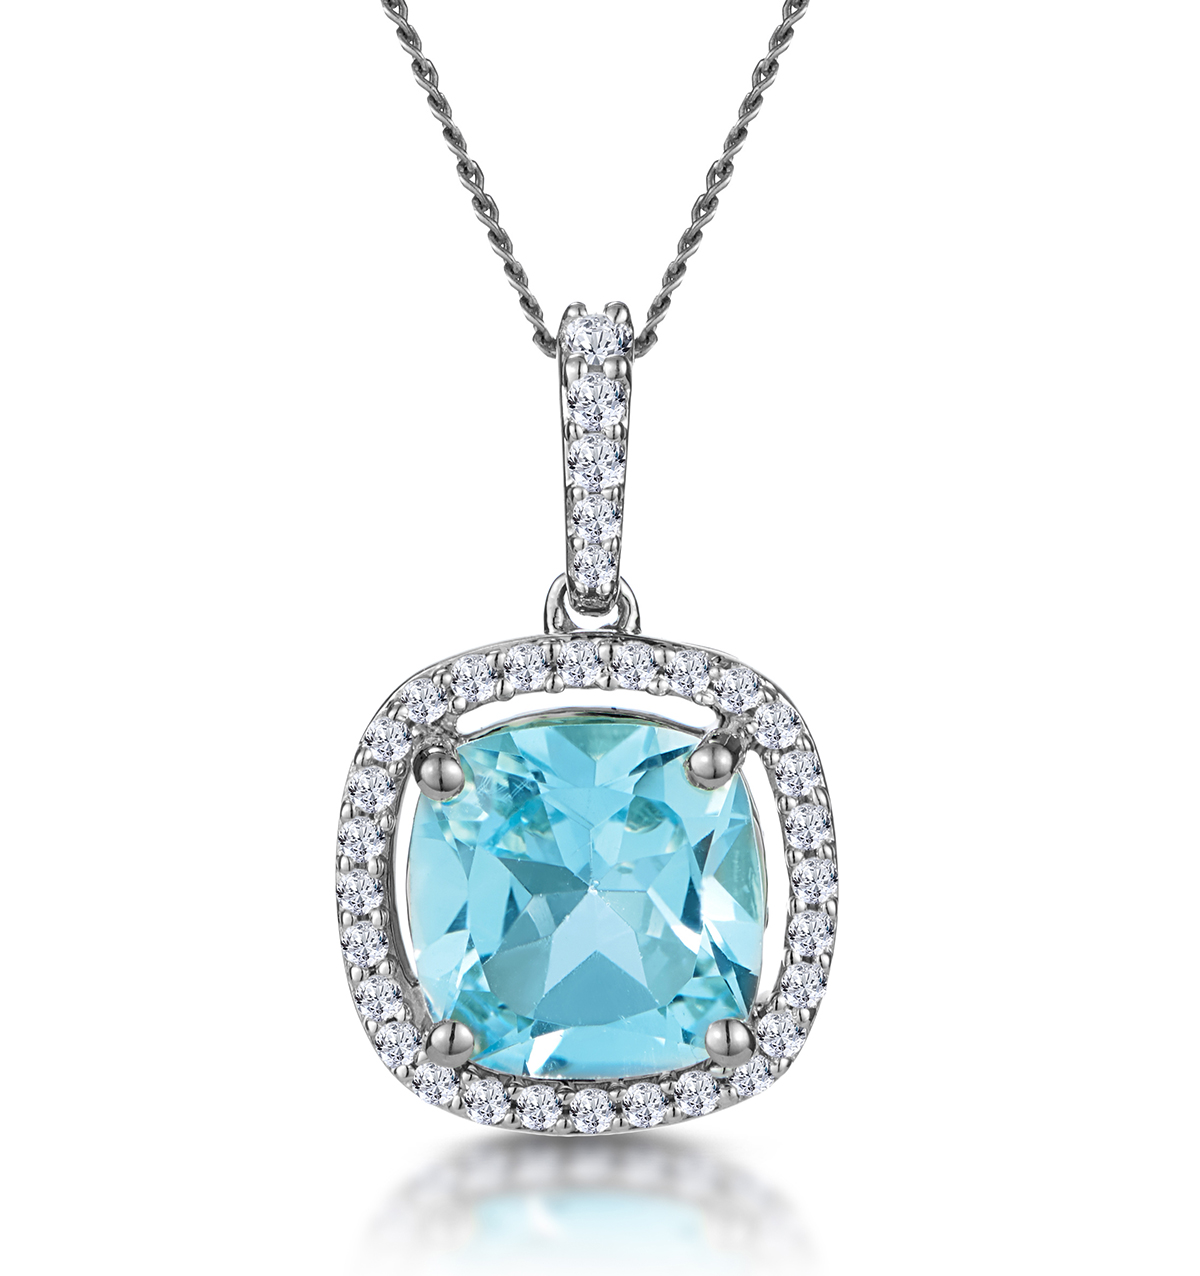 2CT BLUE TOPAZ AND DIAMOND HALO ASTERIA NECKLACE 18KW GOLD